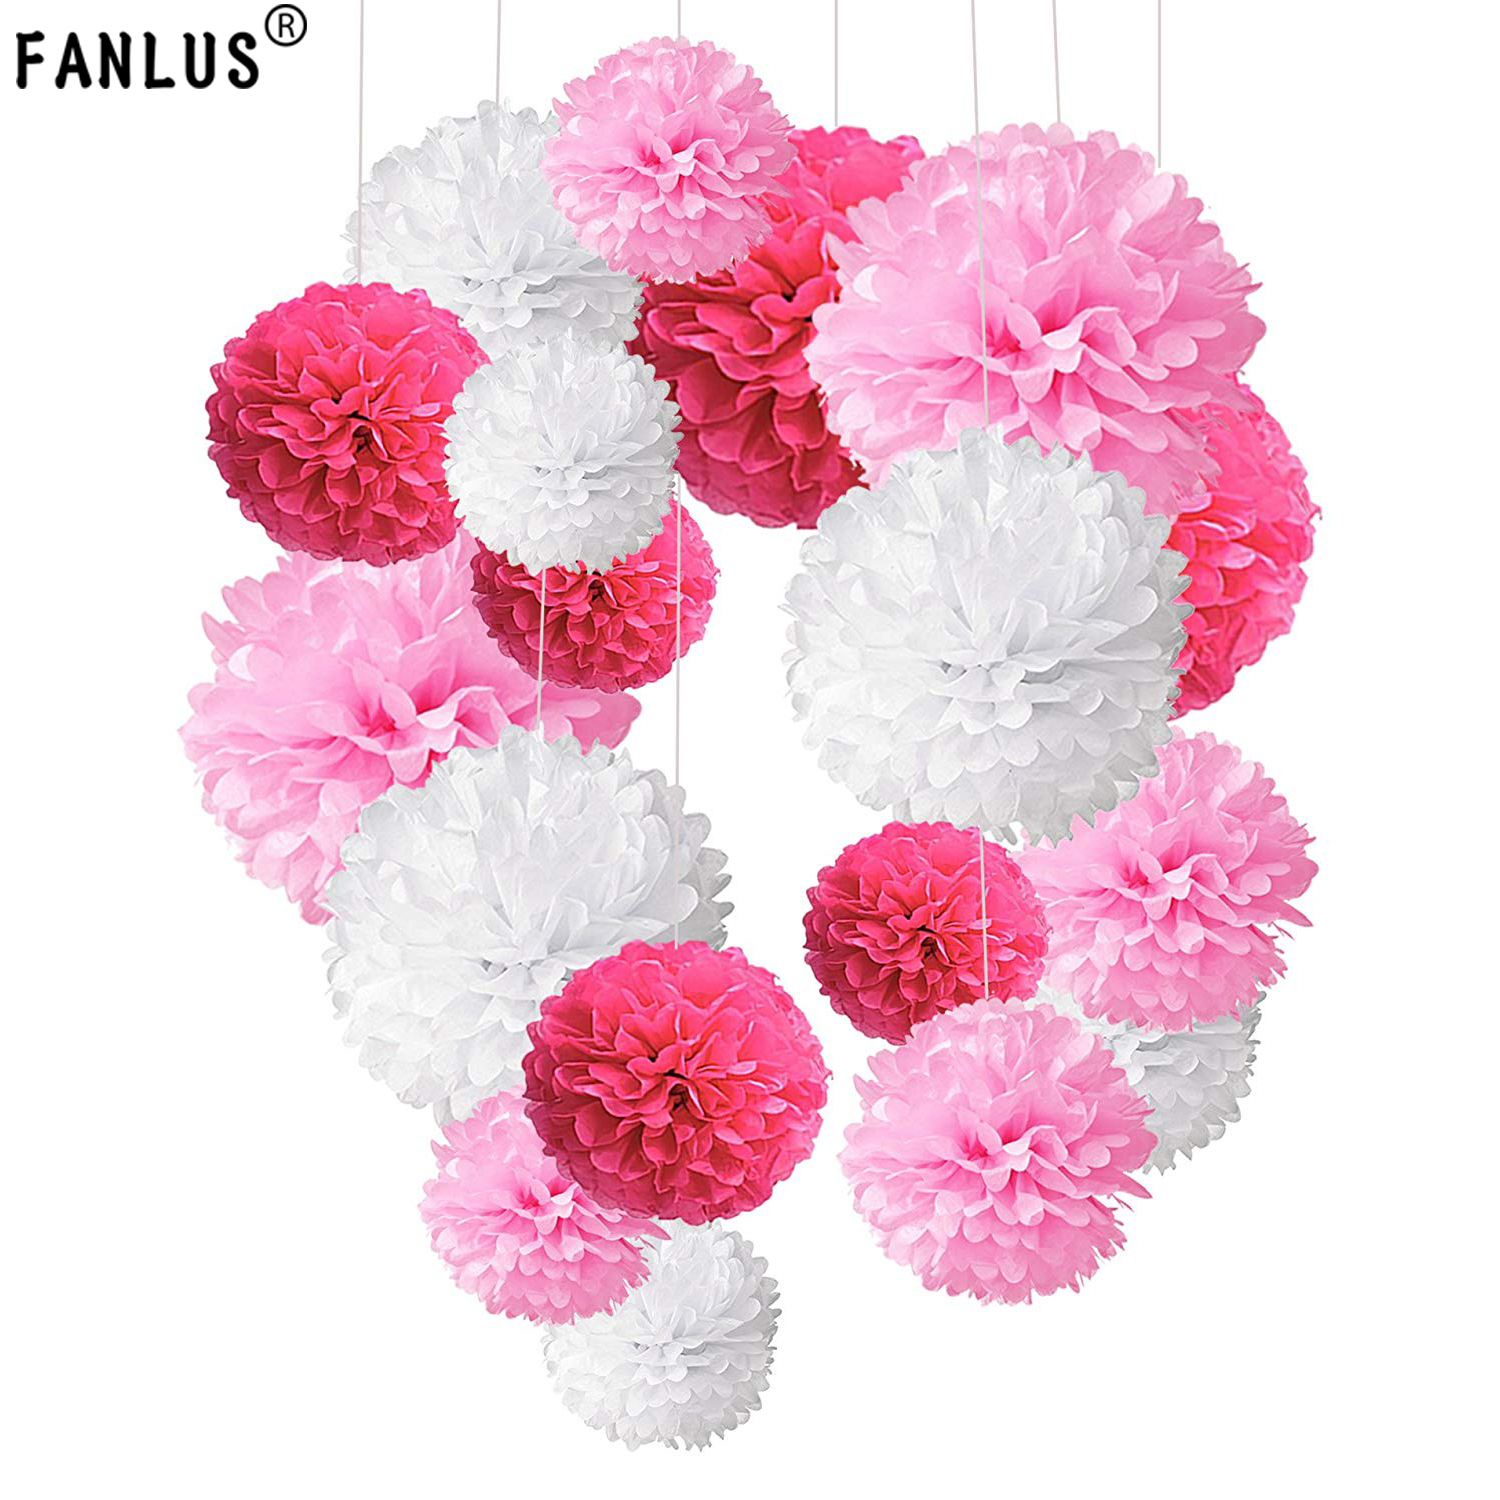 Best Price Fanlus 13cm Tissue Paper Pom Poms Paper Flower Ball For